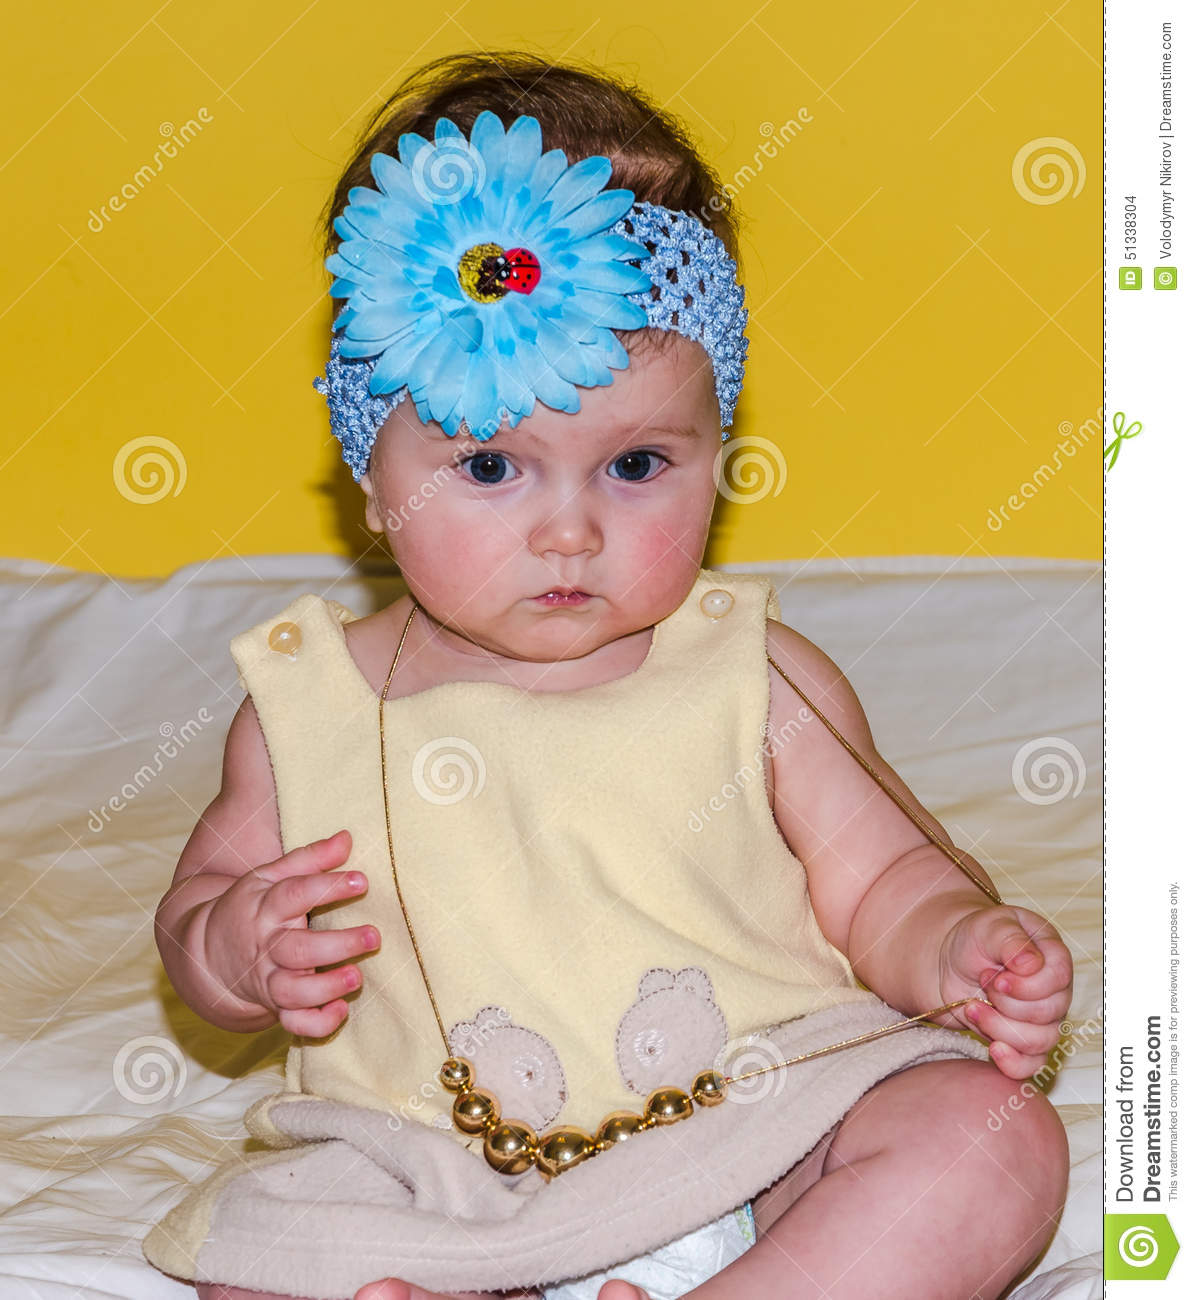 135dab1f8a41 Portrait Of A Beautiful Little Baby Girl In A Yellow Dress With A ...